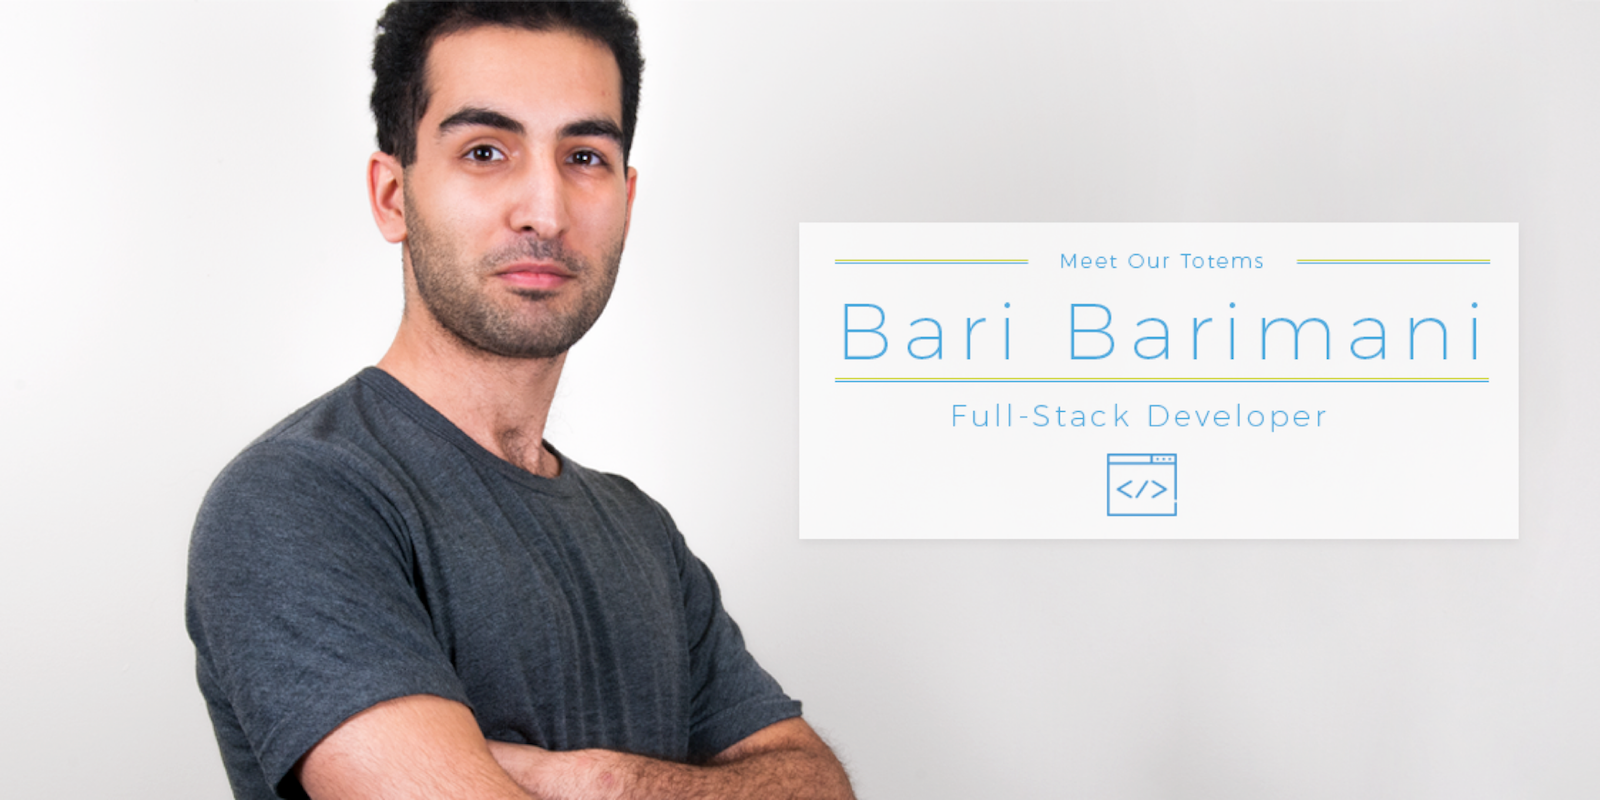 Meet Our Totems – Bari